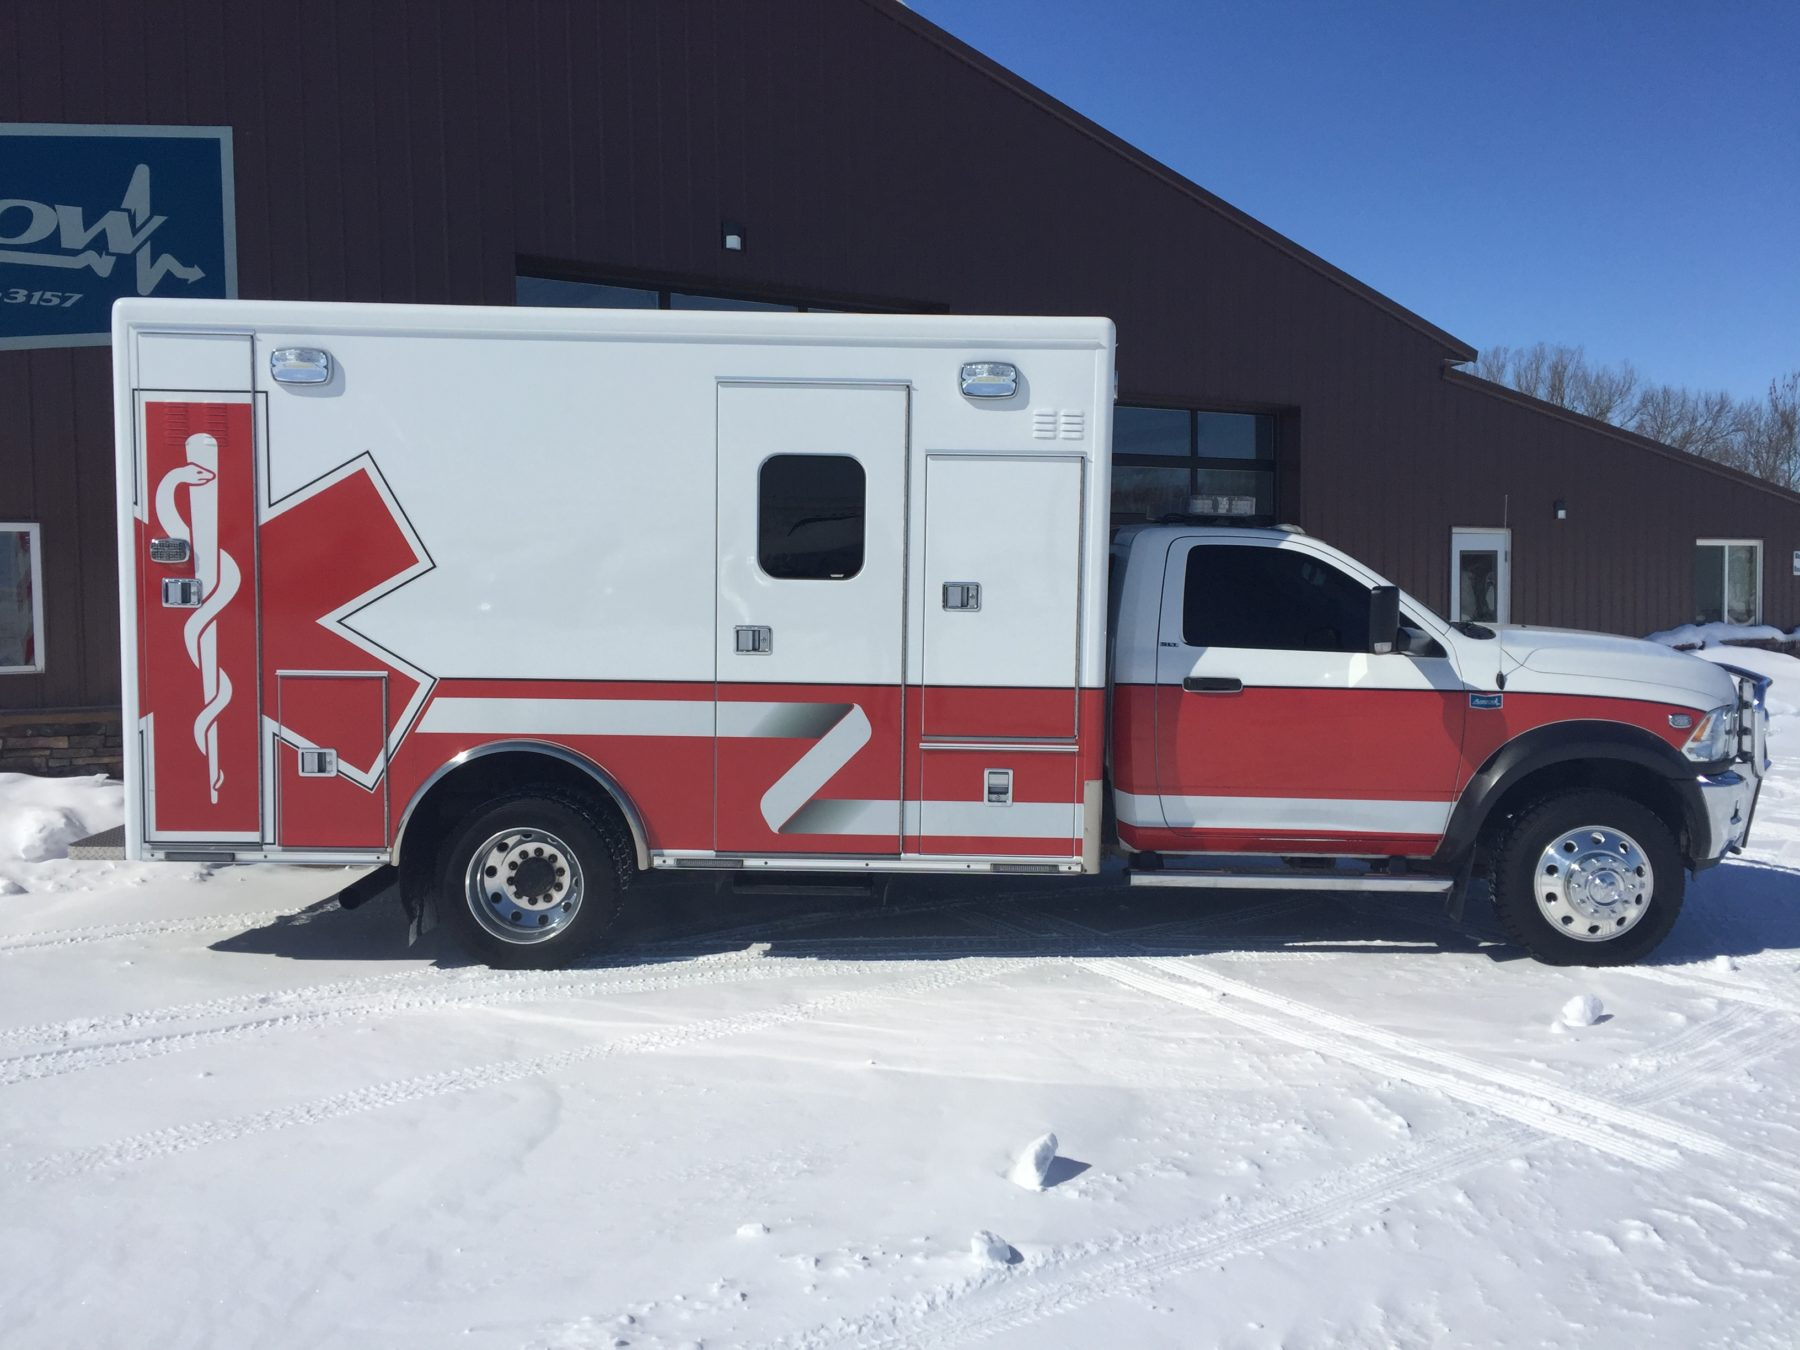 2015 Dodge 4500 4x4 Heavy Duty Ambulance For Sale – Picture 4